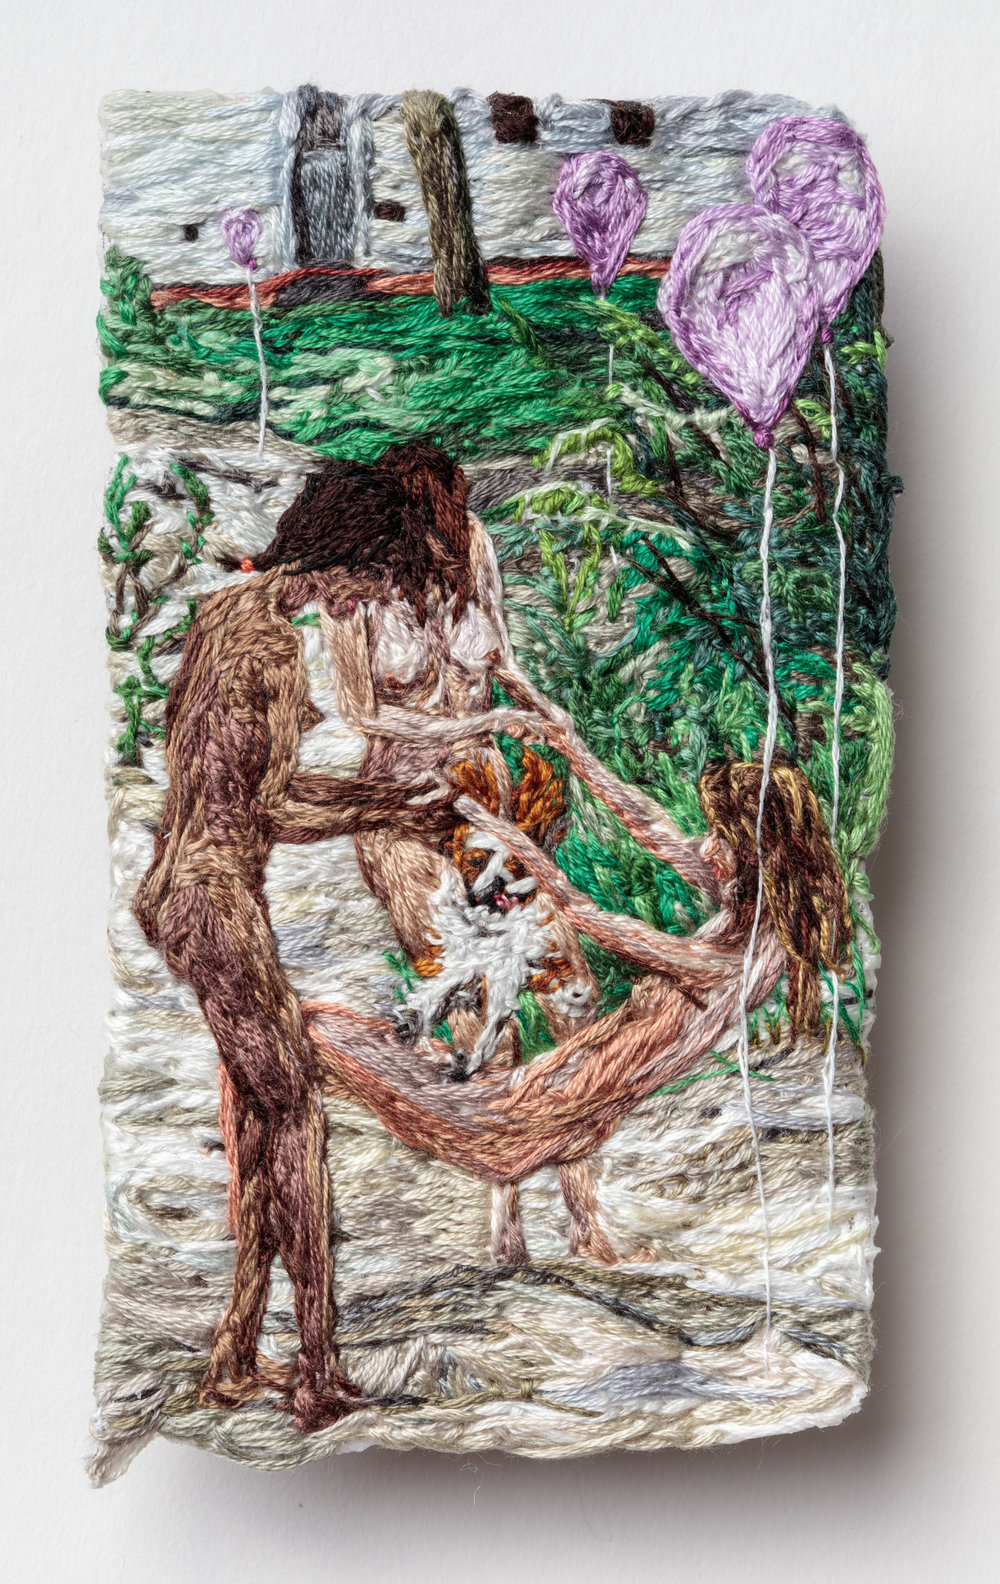 Sophia Narrett,  Puppy Tricks,  2017, Embroidery Thread on Fabric, 5 x 3 inches